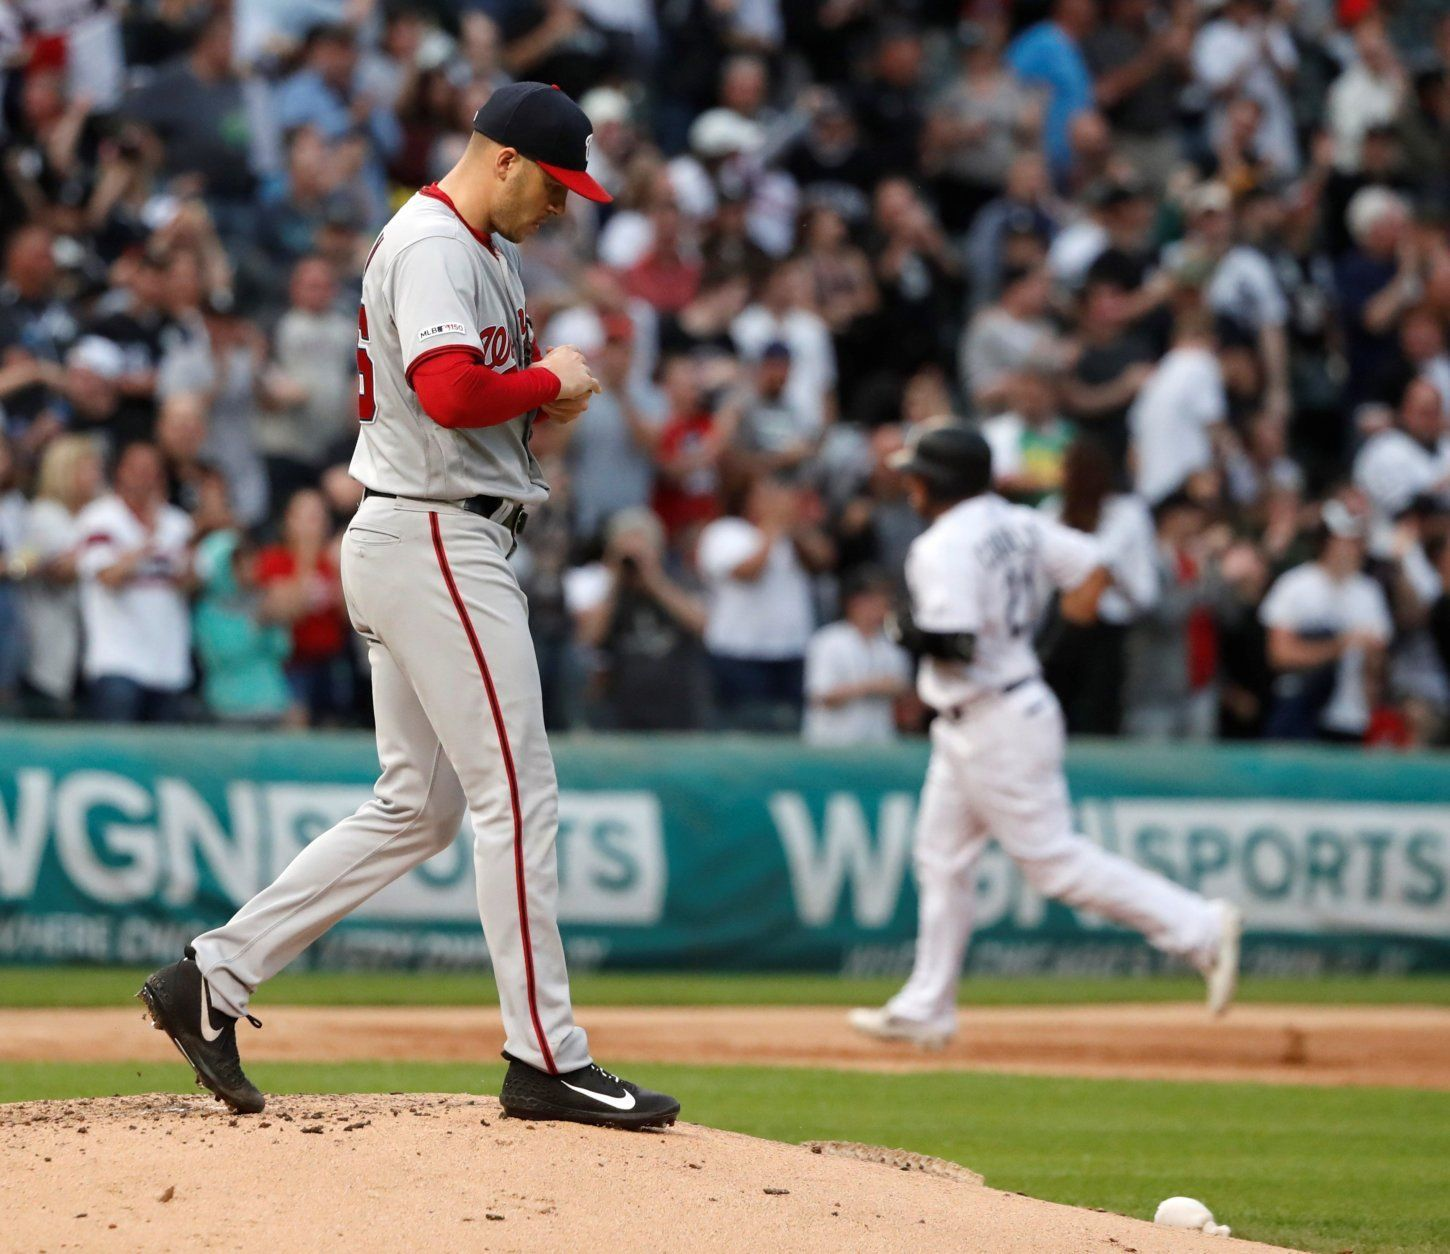 Washington Nationals starting pitcher Patrick Corbin, left, returns to the mound after giving up a grand slam to Chicago White Sox's Welington Castillo, background right, during the first inning of a baseball game Tuesday, June 11, 2019, in Chicago. (AP Photo/Charles Rex Arbogast)